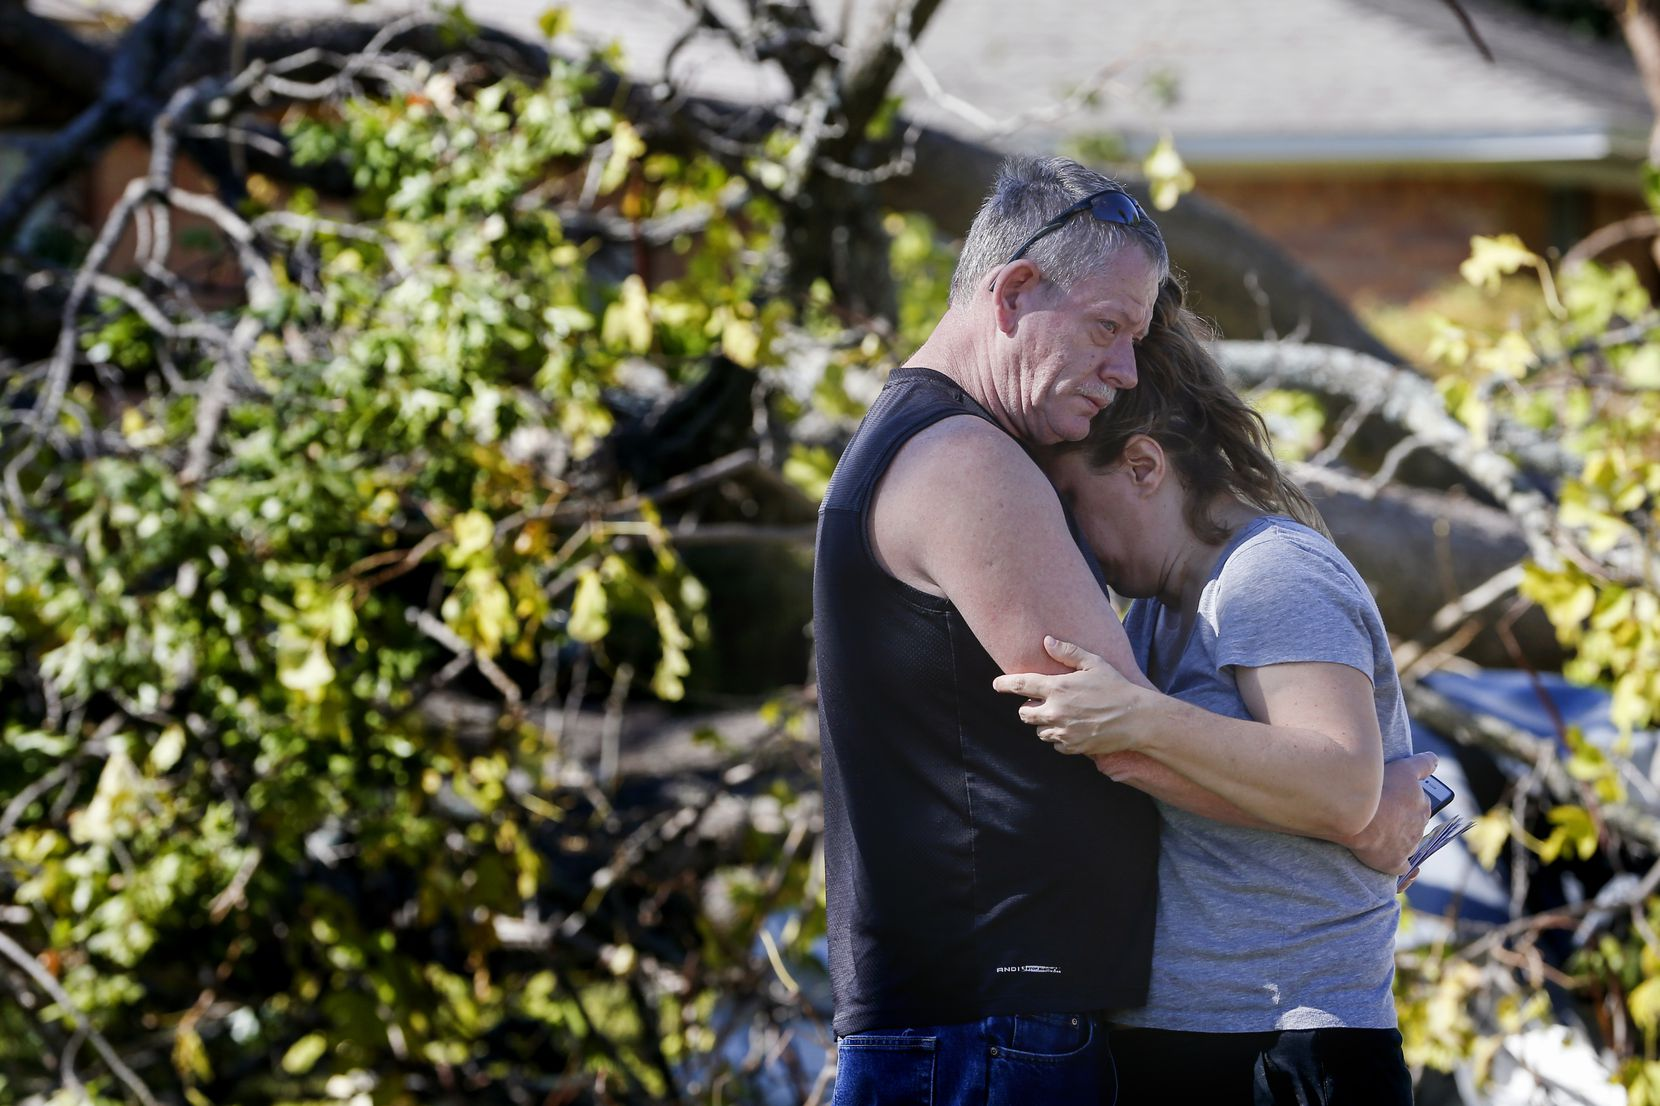 Tommy Edmonds, left, embraces his wife, Heidi Edmonds, outside of their home, which was destroyed when a tornado hit the night before, on Westway Avenue in Garland, Texas, on Sunday, Oct. 21, 2019. (Ryan Michalesko/The Dallas Morning News)